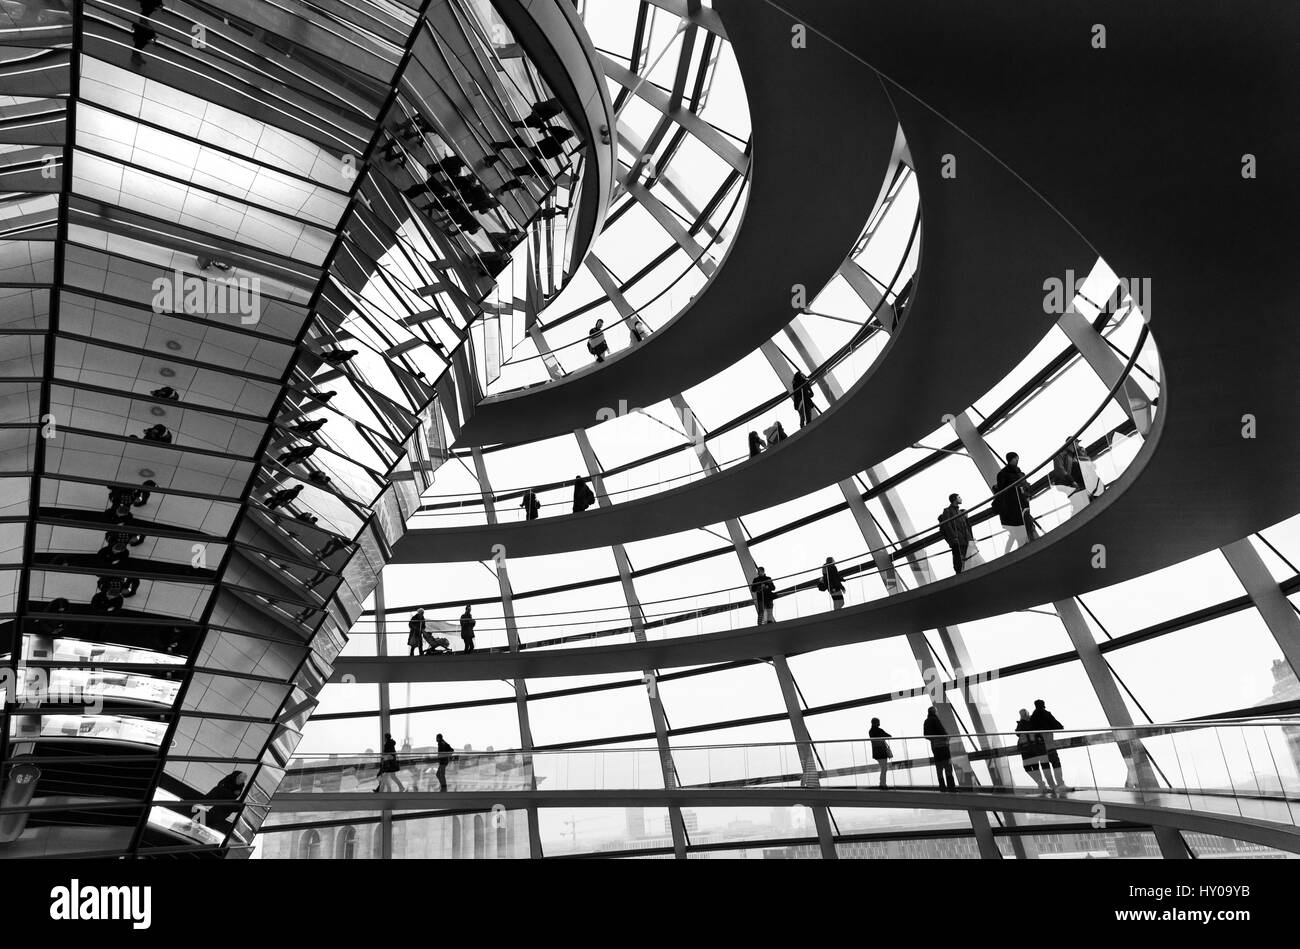 Berlin, Germany - February 19, 2017: Deutscher bundestag German Parliament modern glass dome with people around - Stock Image